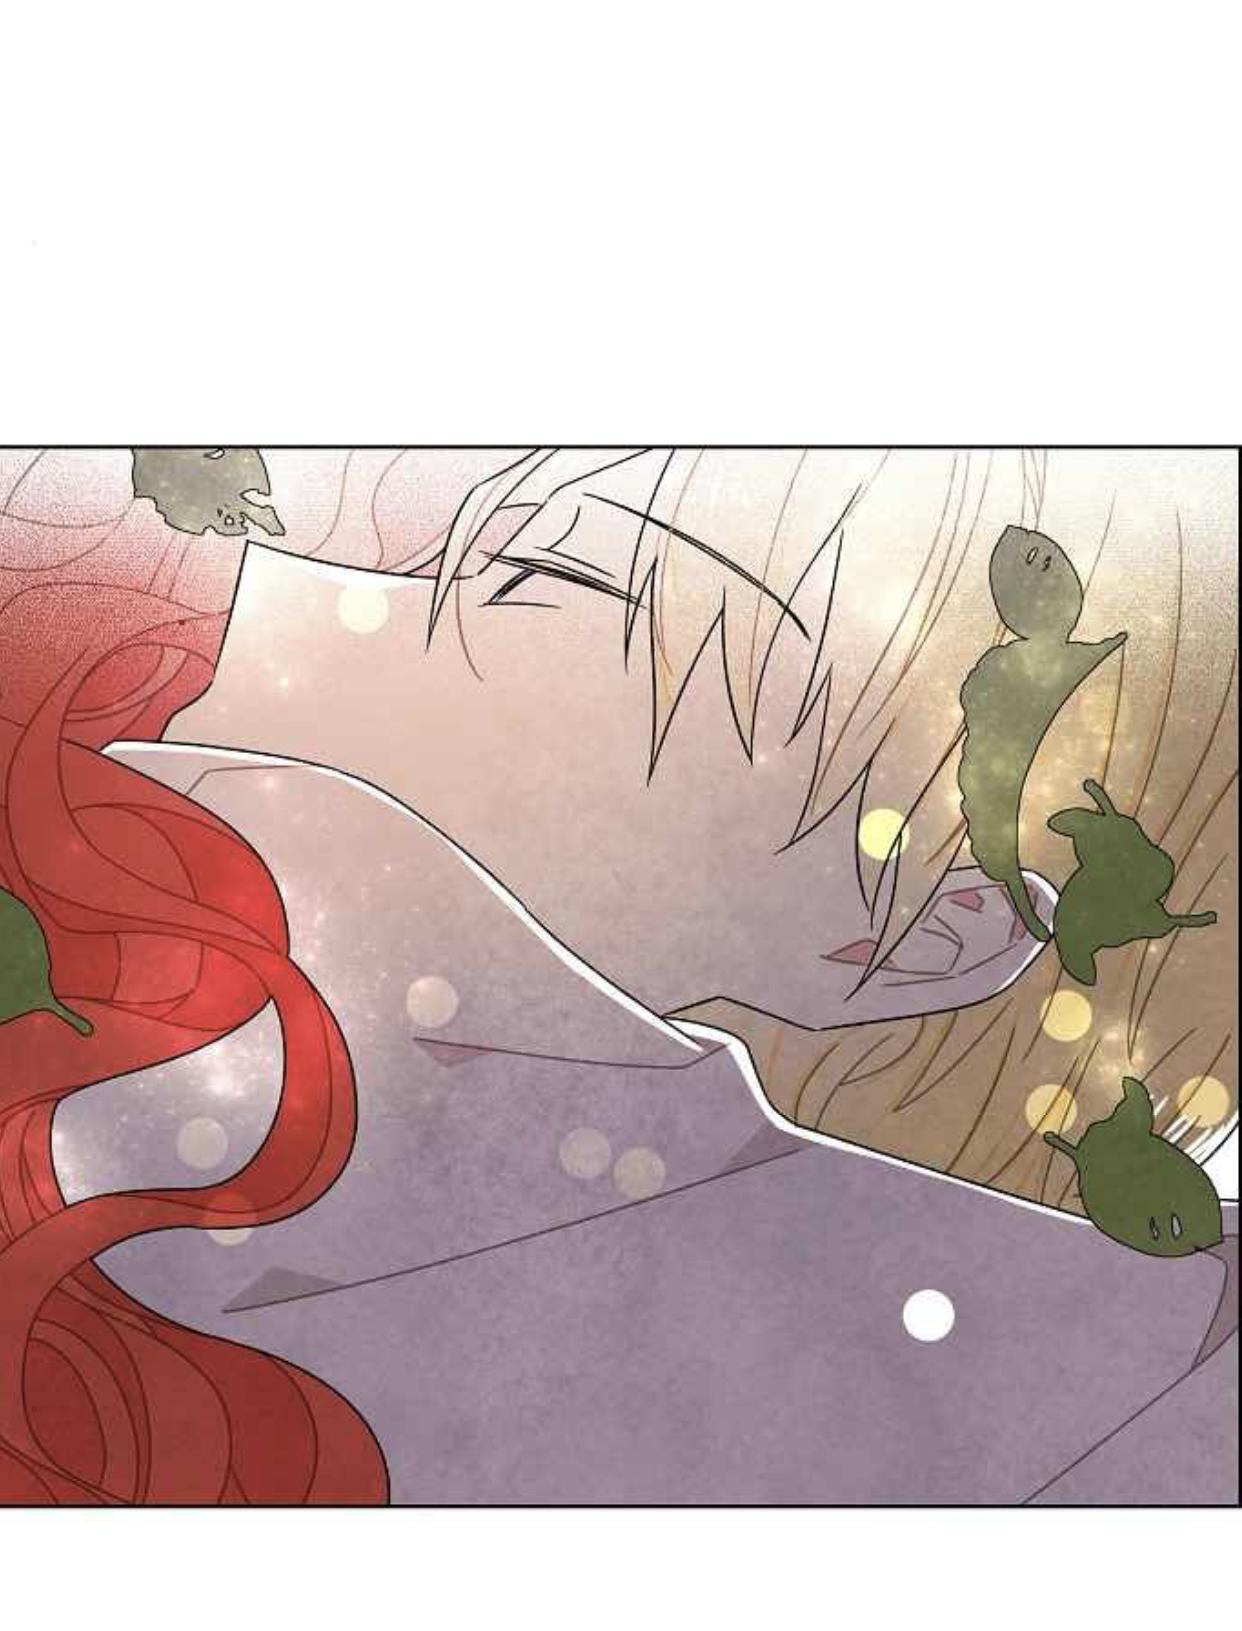 I Stole the Male Lead's First Night - chapter 56 - #2